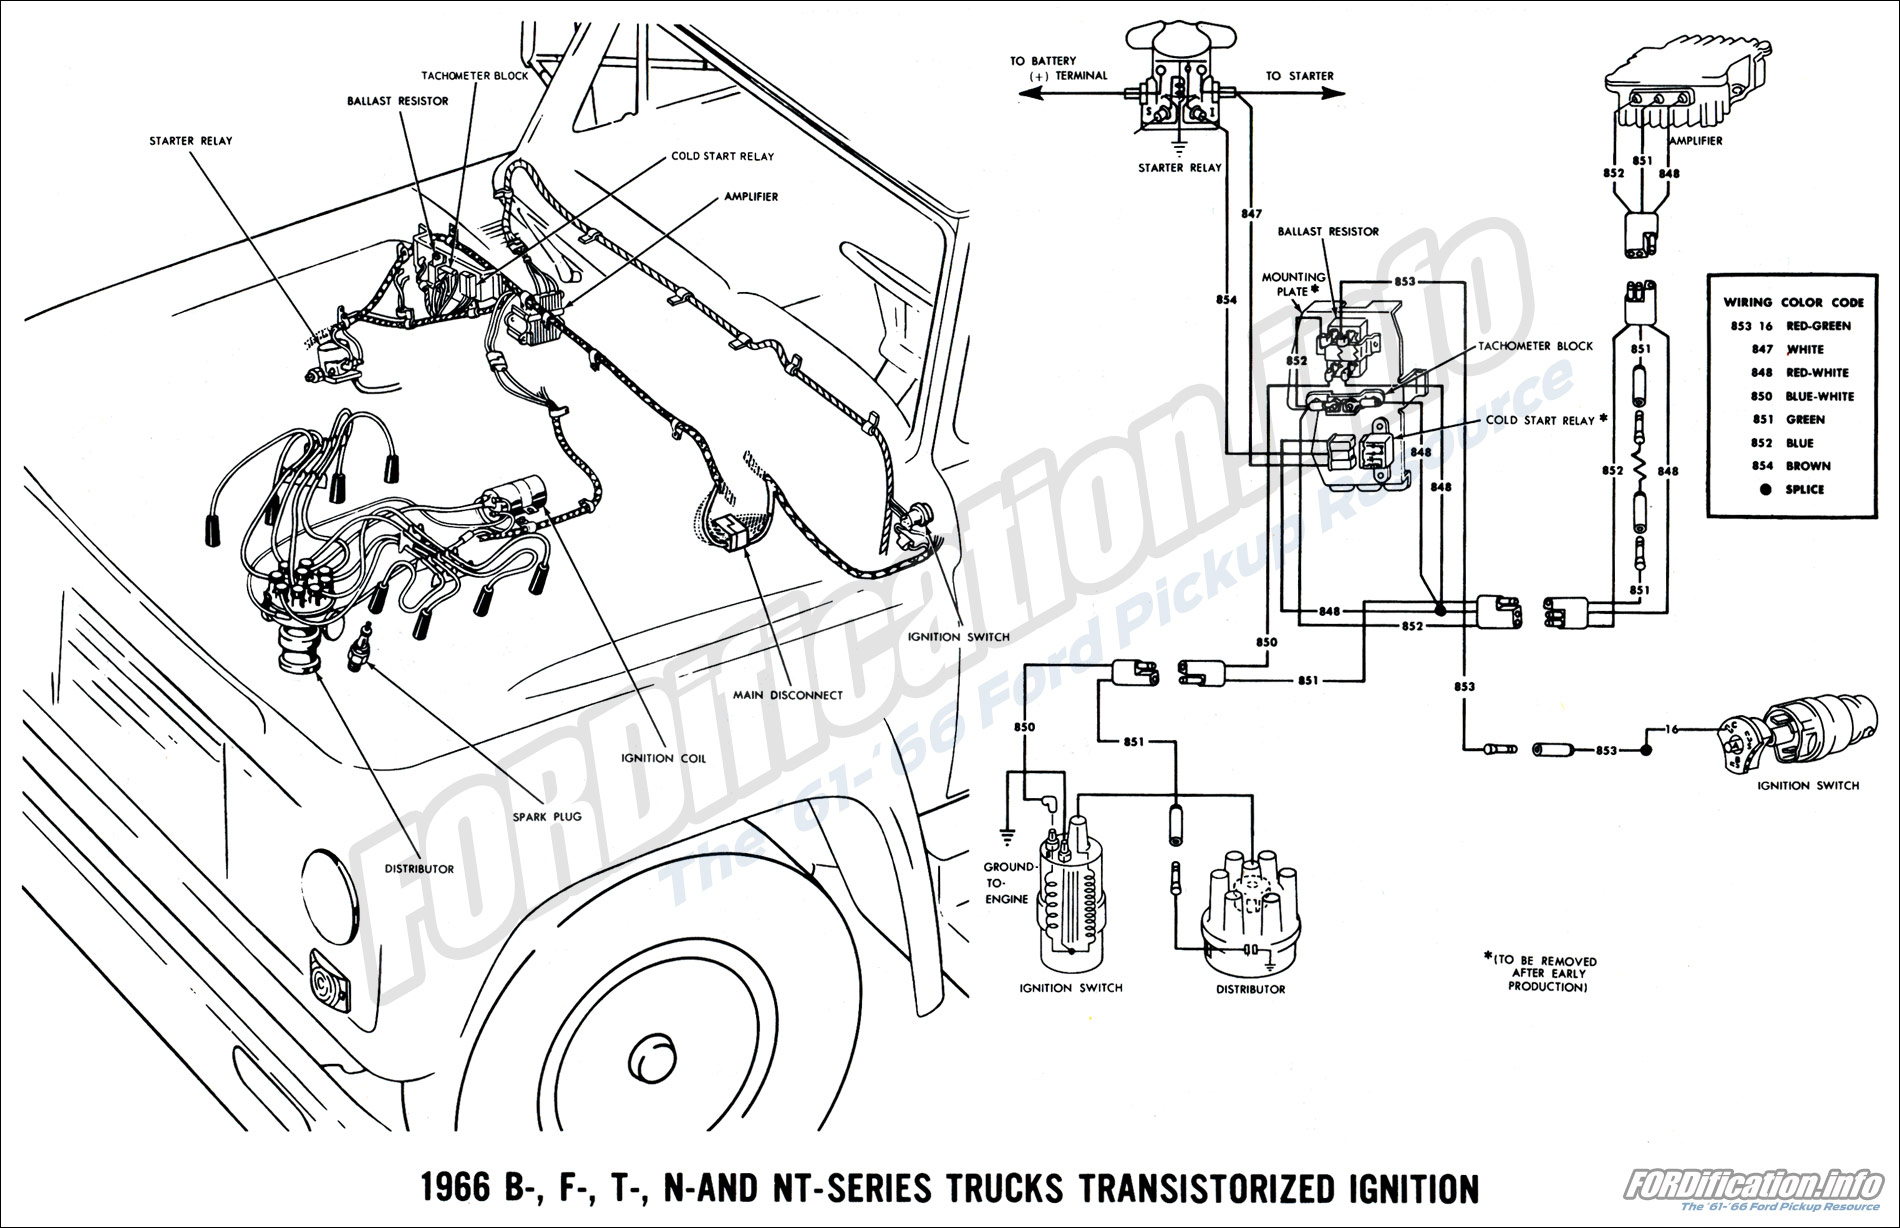 1953 ford f100 wiring diagram 1953 ford f100 wiring diagram wiring diagram e10  1953 ford f100 wiring diagram wiring